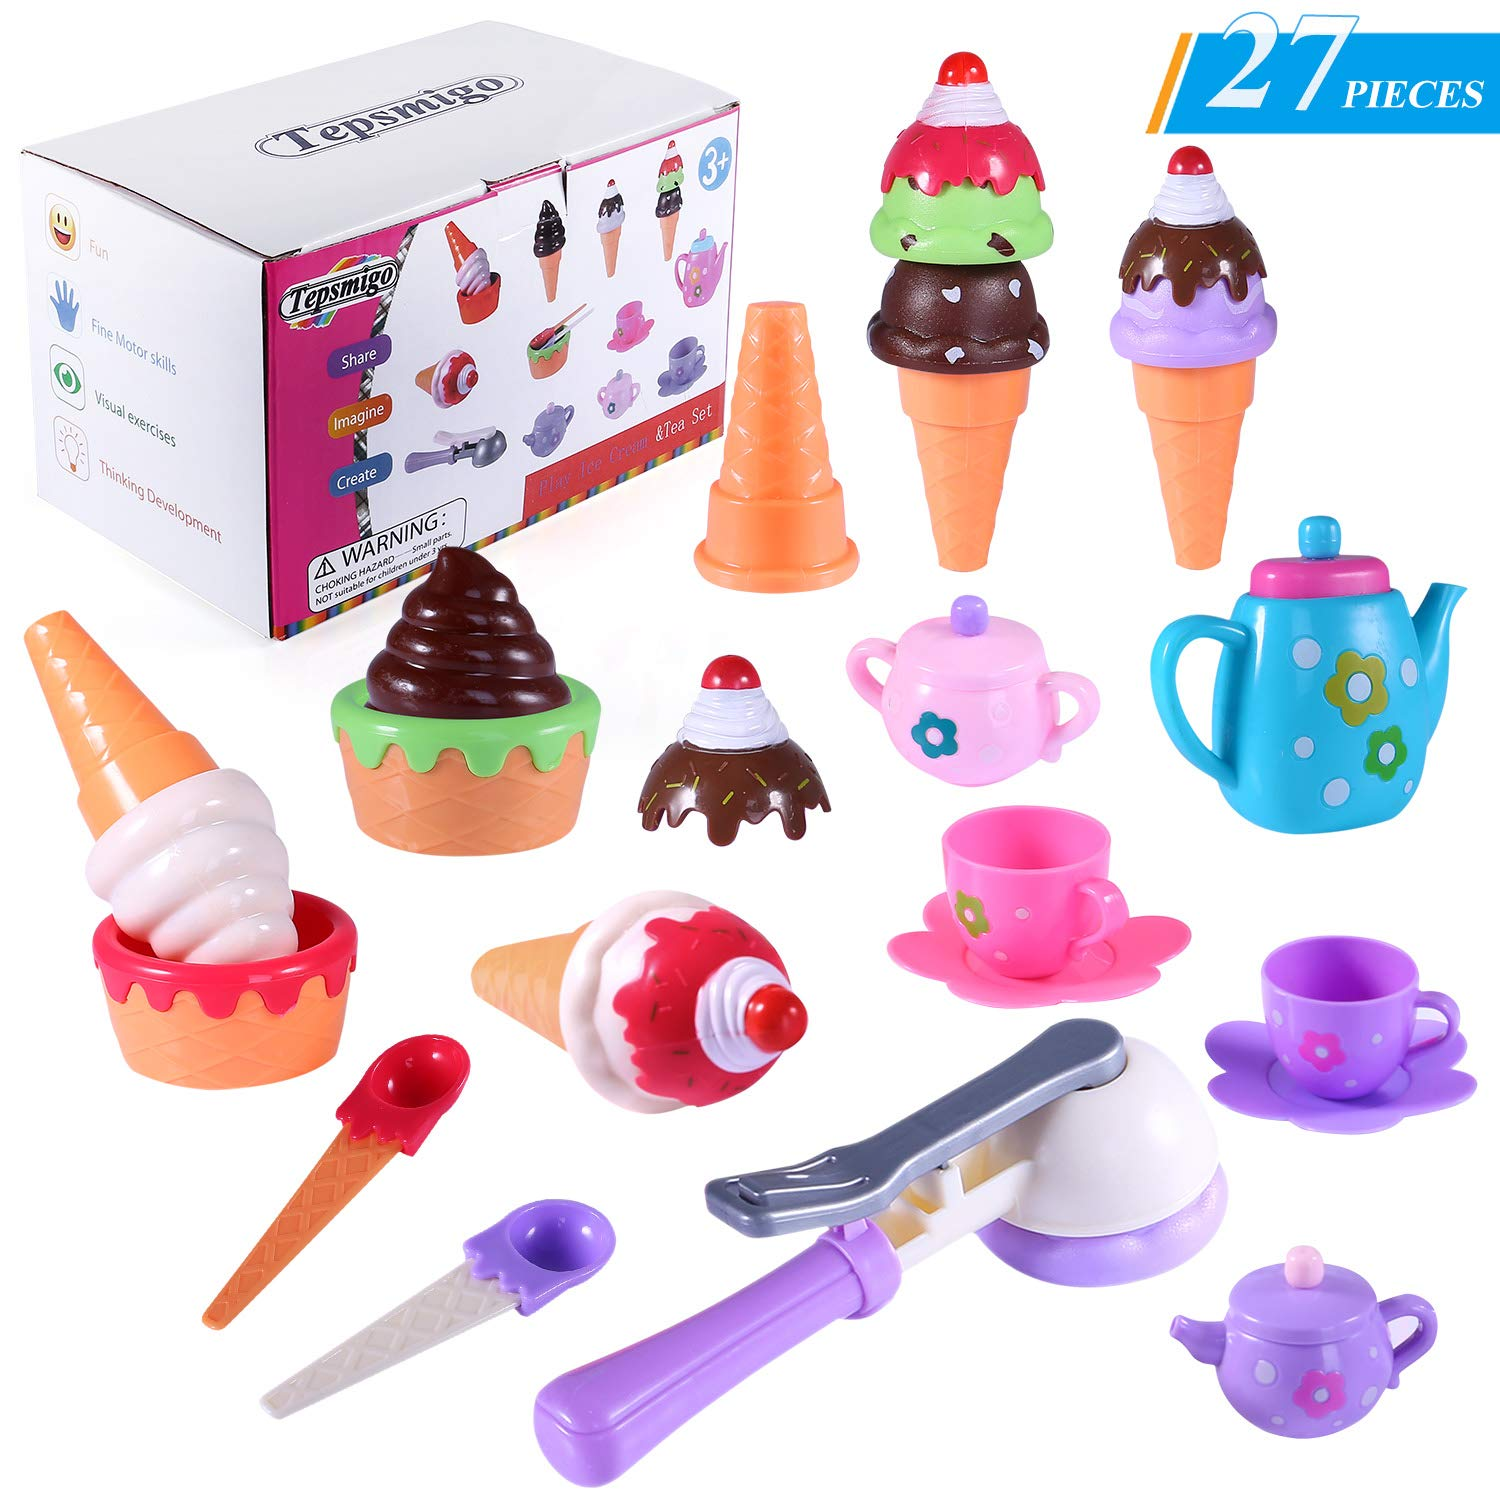 TEPSMIGO Plastic Stack Ice Cream Toy with Play Tea Set, 27 PCS Colored Pretend Food Educational Gifts for Toddler Children Age 3+ Boys Girls